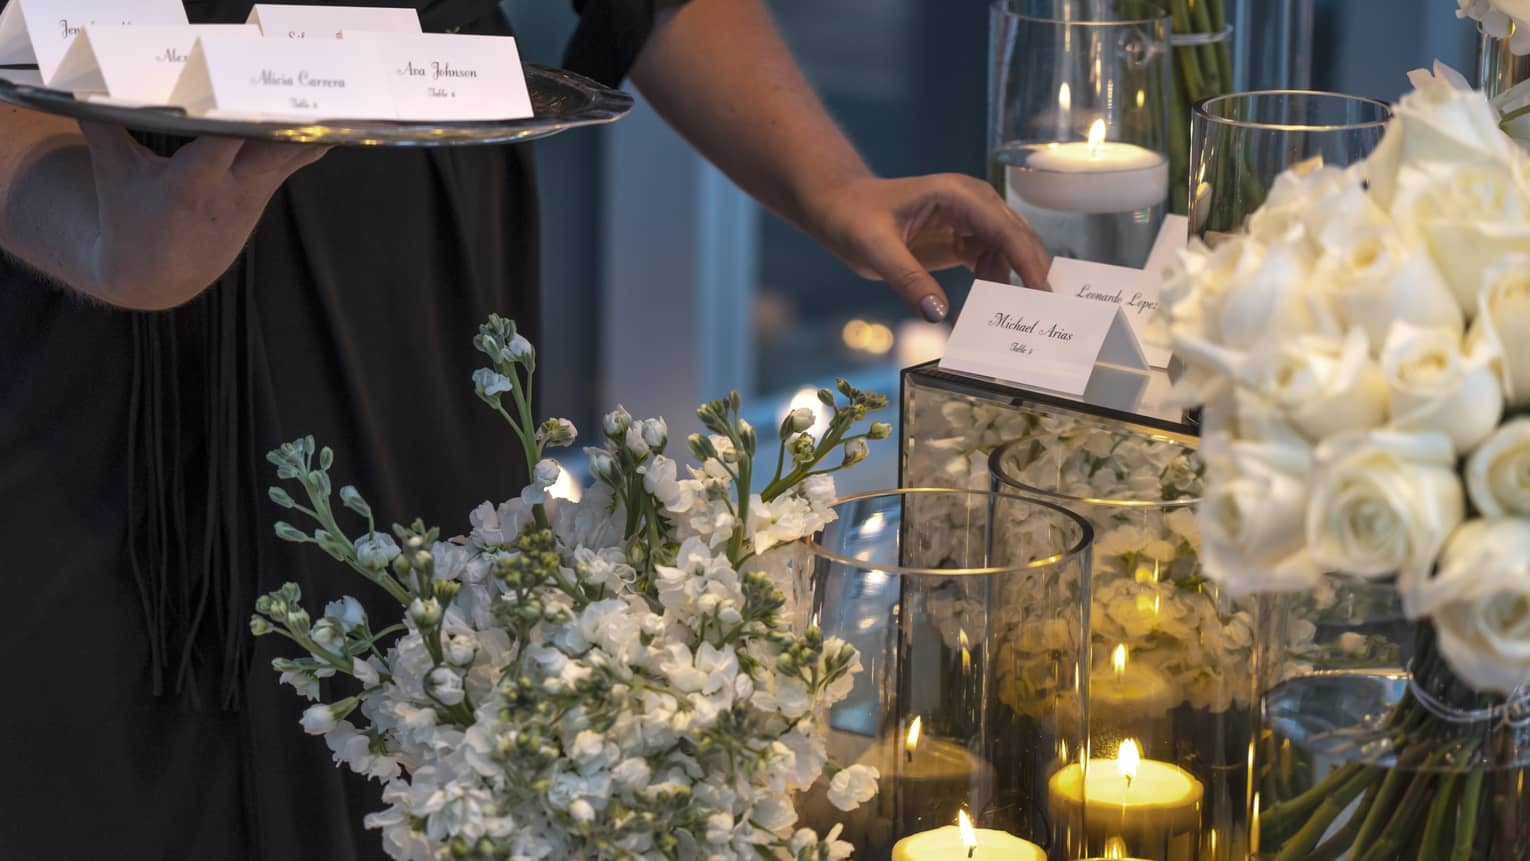 Event staff with tray places name cards on elegant banquet table with white flowers, candles